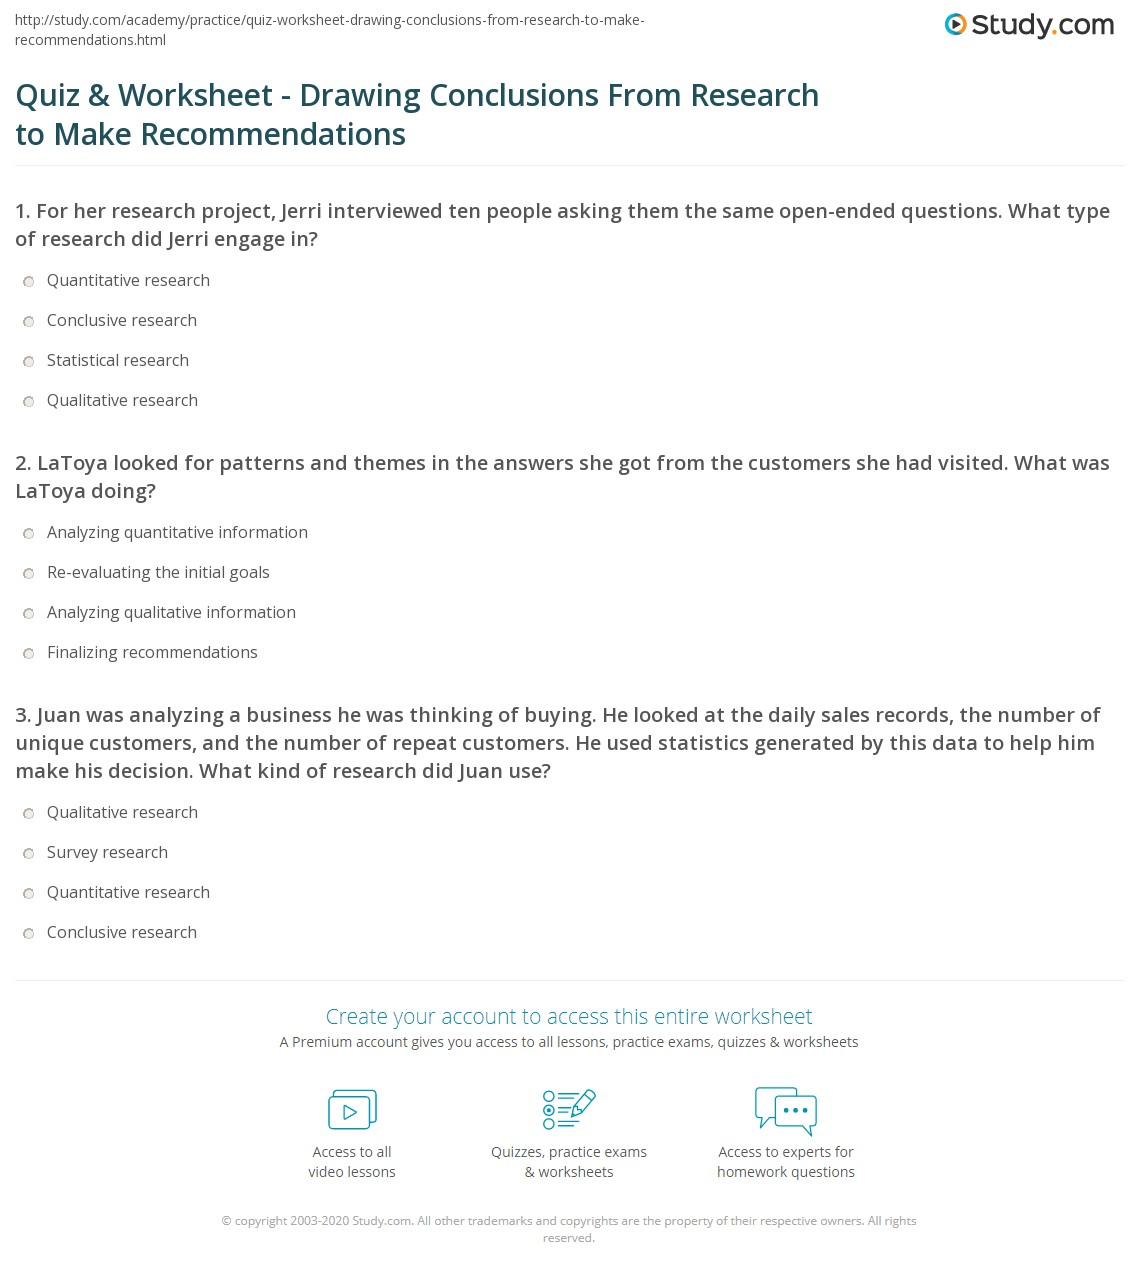 quiz & worksheet - drawing conclusions from research to make